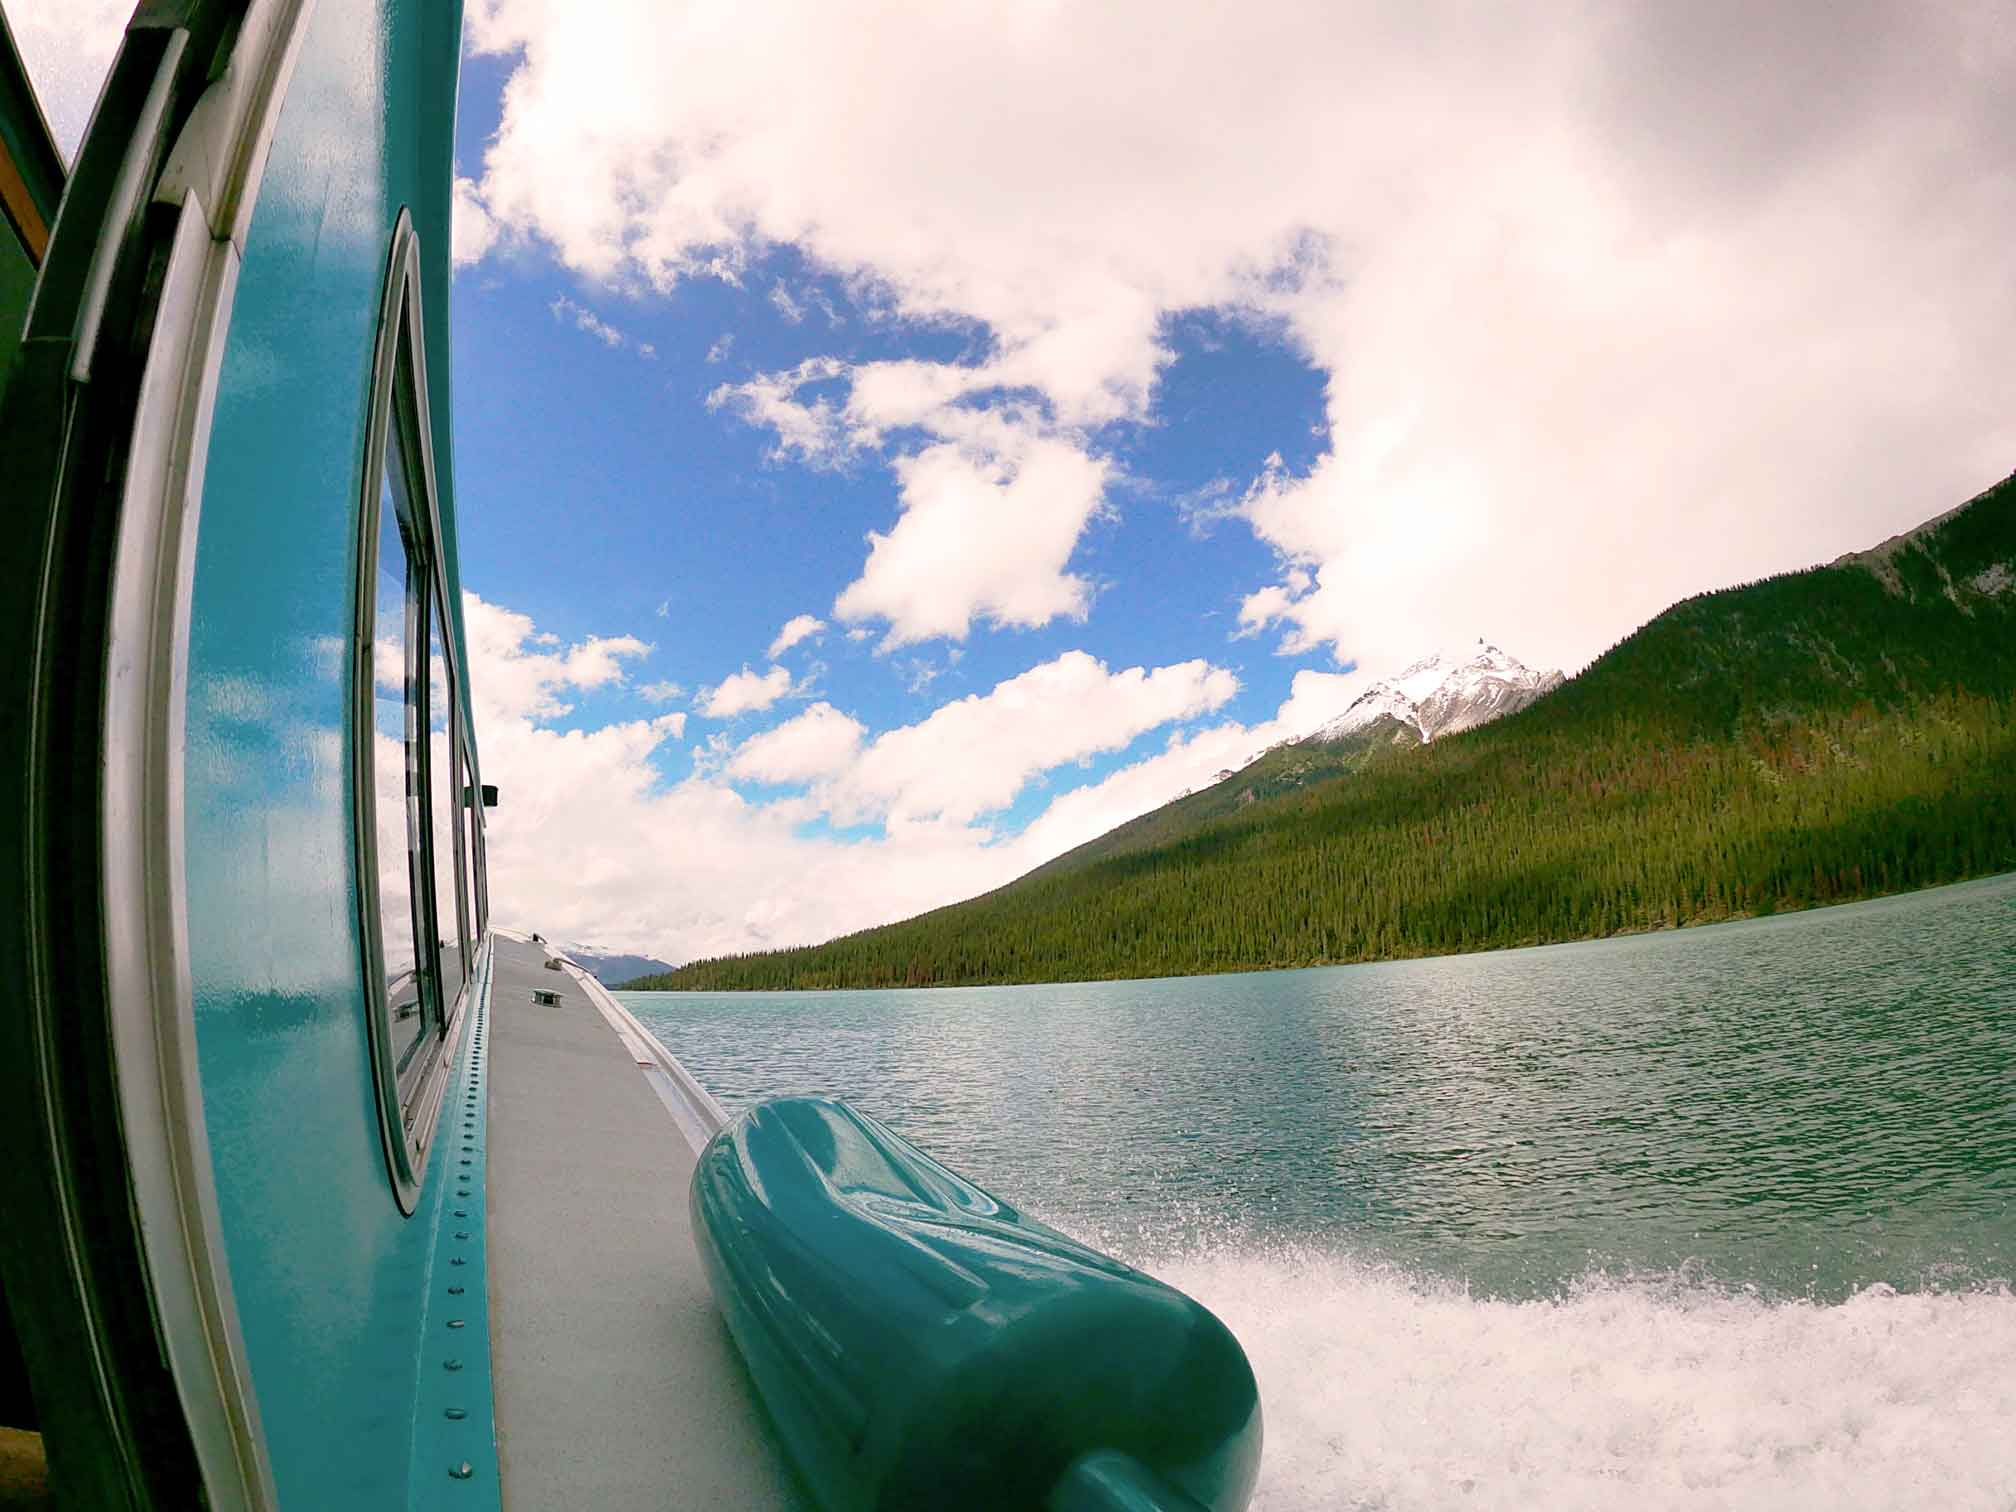 Maligne Lake Boat with waves